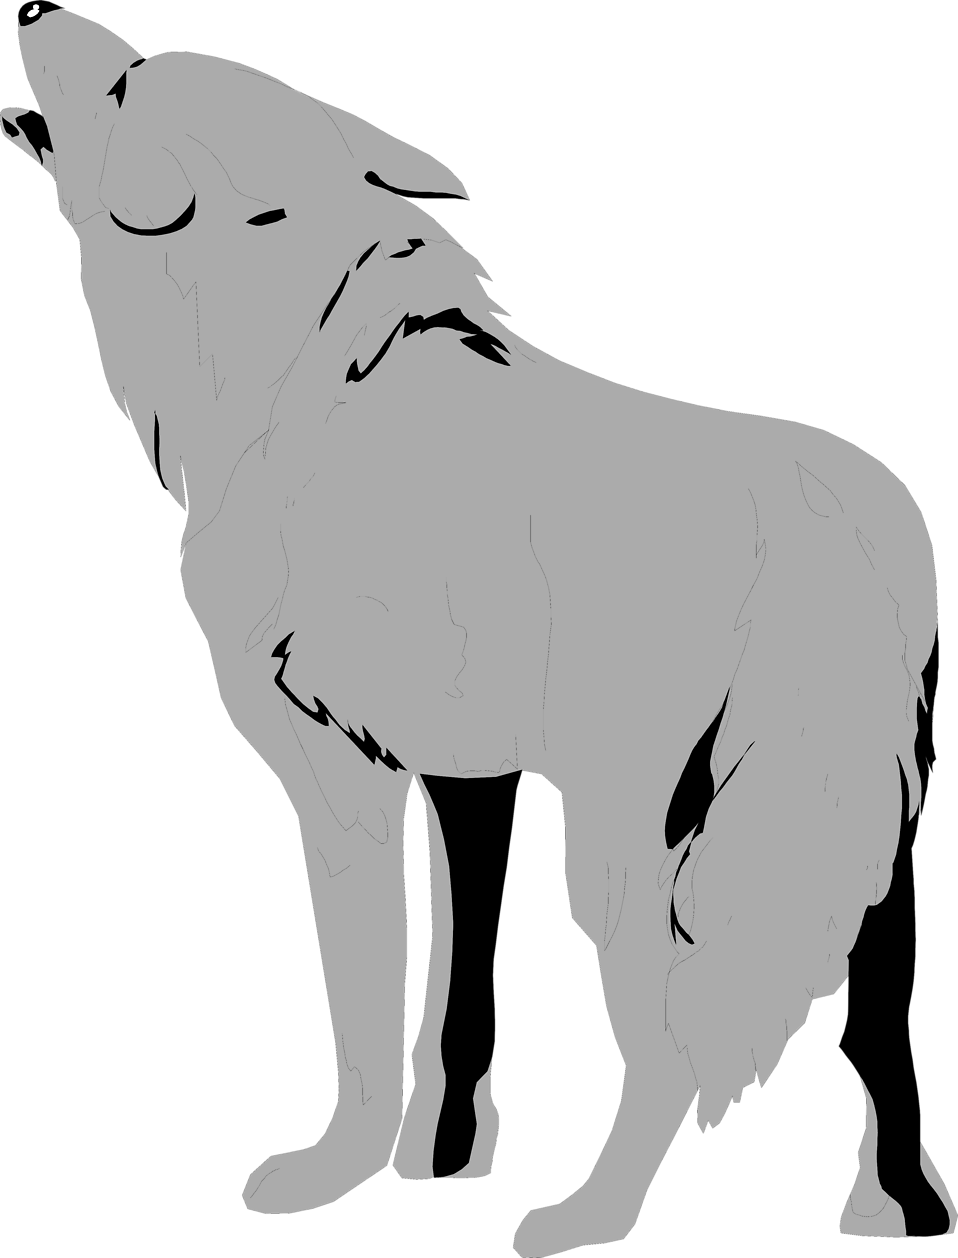 Dog clipart no background vector transparent Wolves | Free Stock Photo | Illustration of a coyote | # 3600 vector transparent